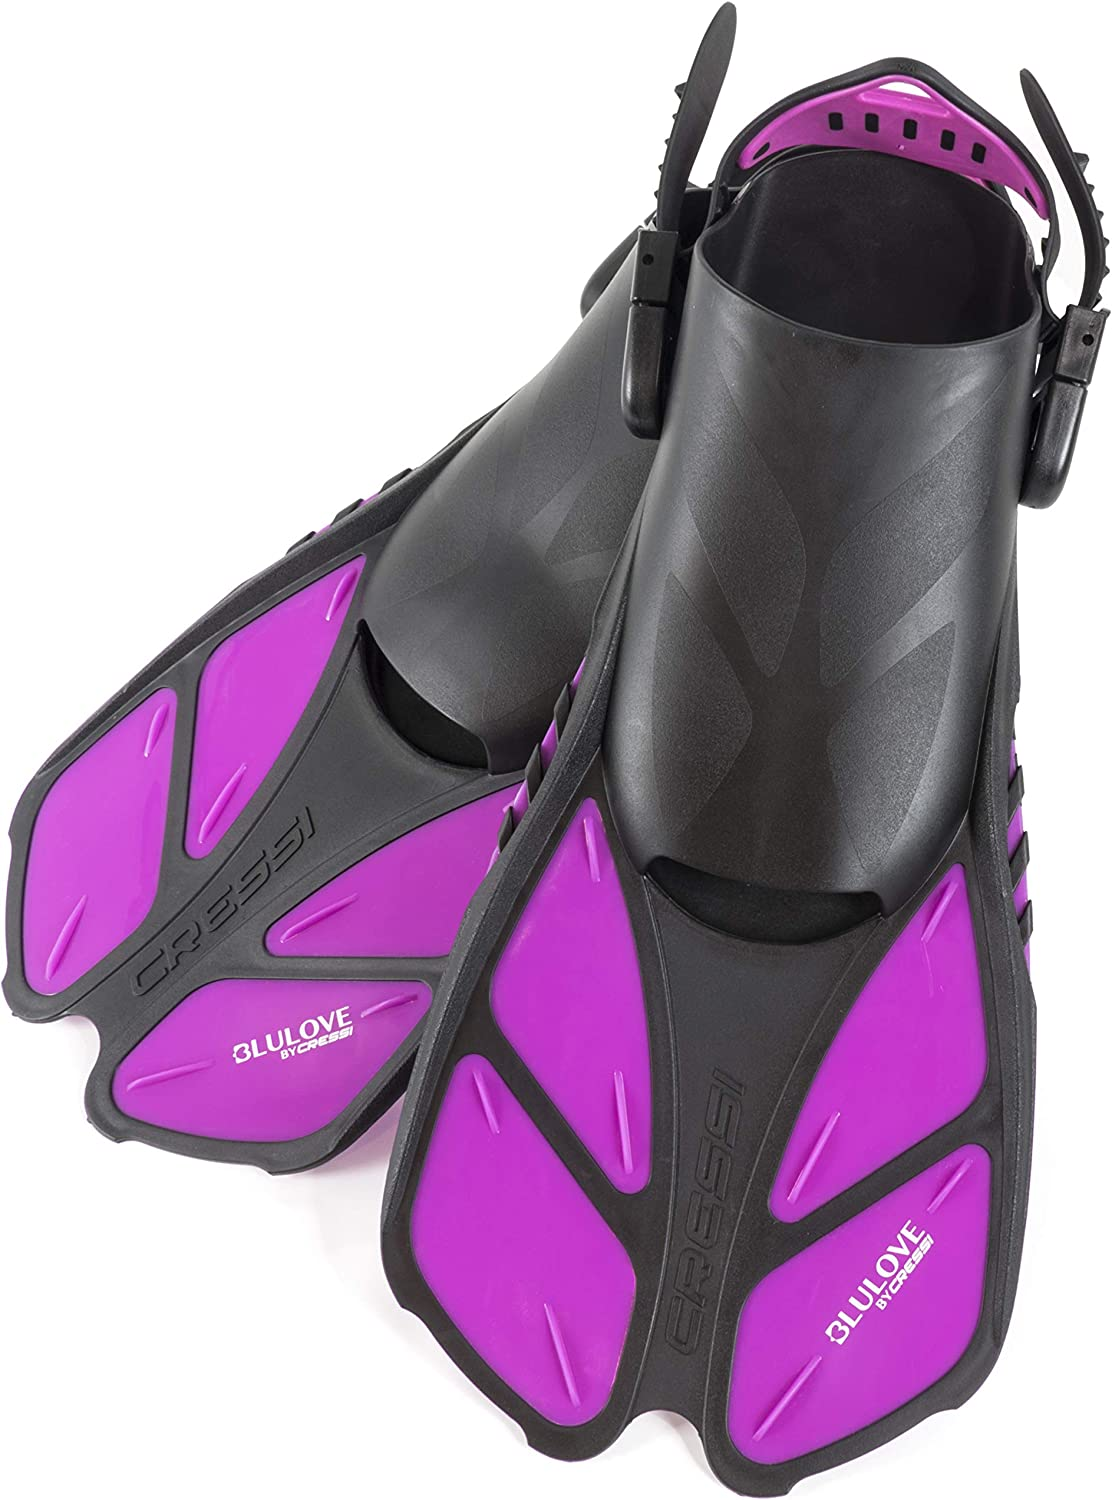 Very Light Bonete: Designed in Italy Cressi Adult Short Adjustable Swim Fins with UltraResistant Buckles Ideal for Traveling